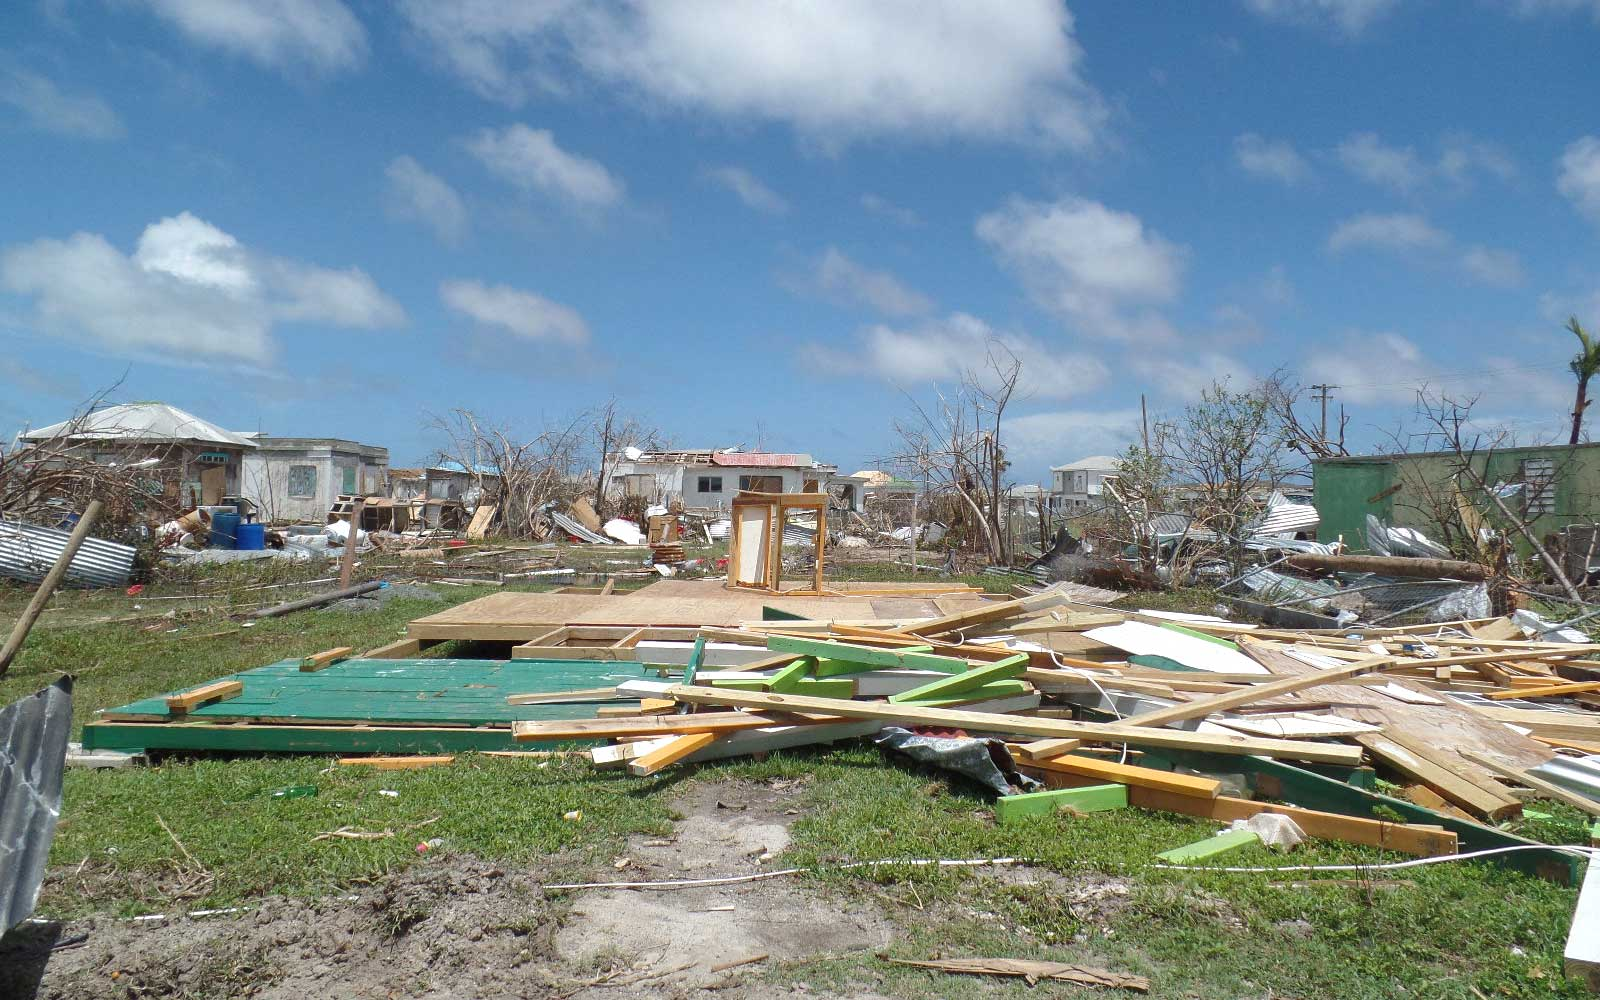 Houses are seen on September 8, 2017 in Codrington, Barbuda, devastated by Hurricane Irma